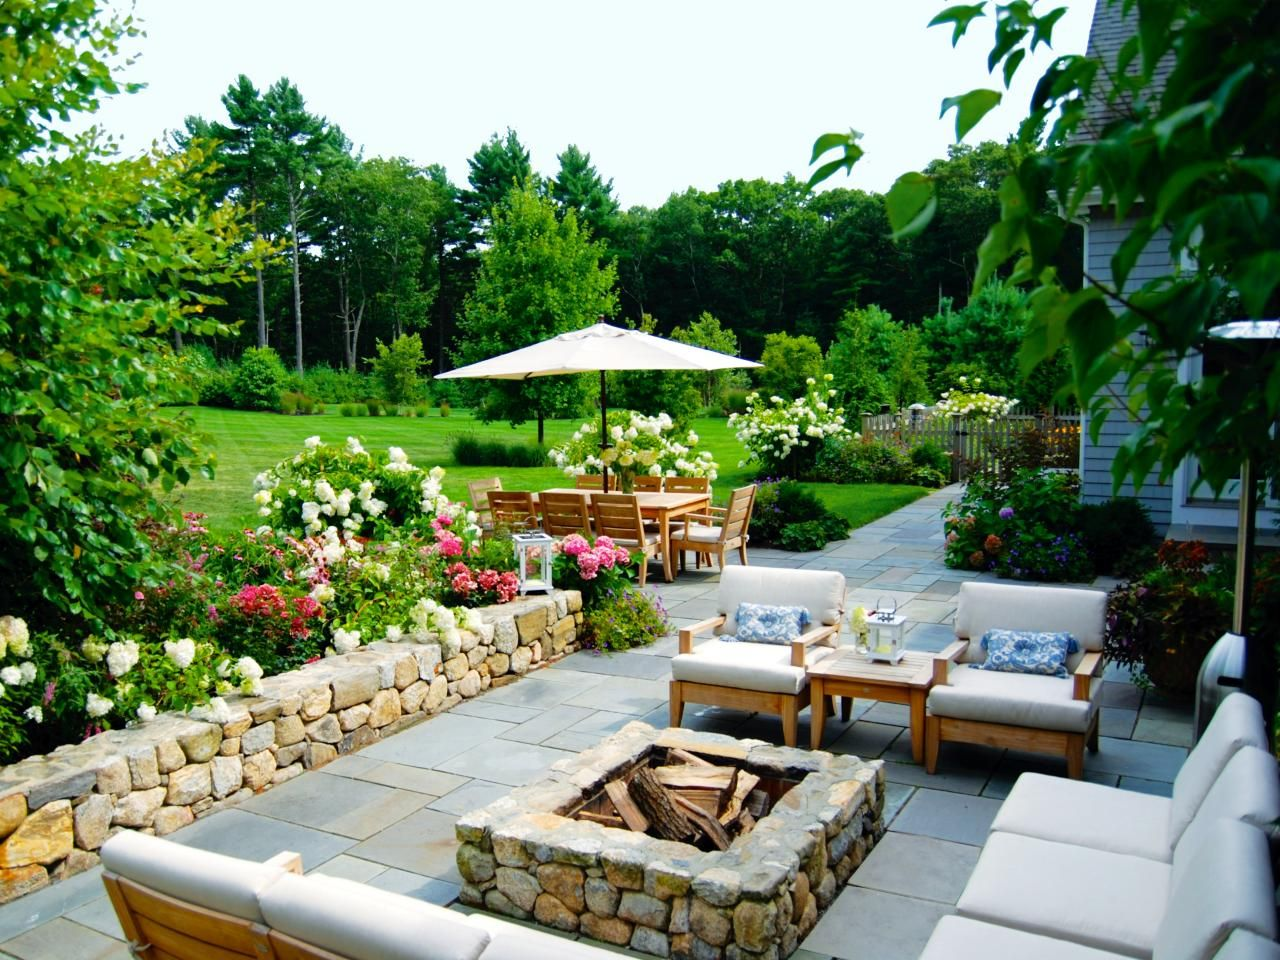 Beau What A Great Outdoor Entertaining Space! Thereu0027s Multiple Seating Areas, A Bonfire  Pit,